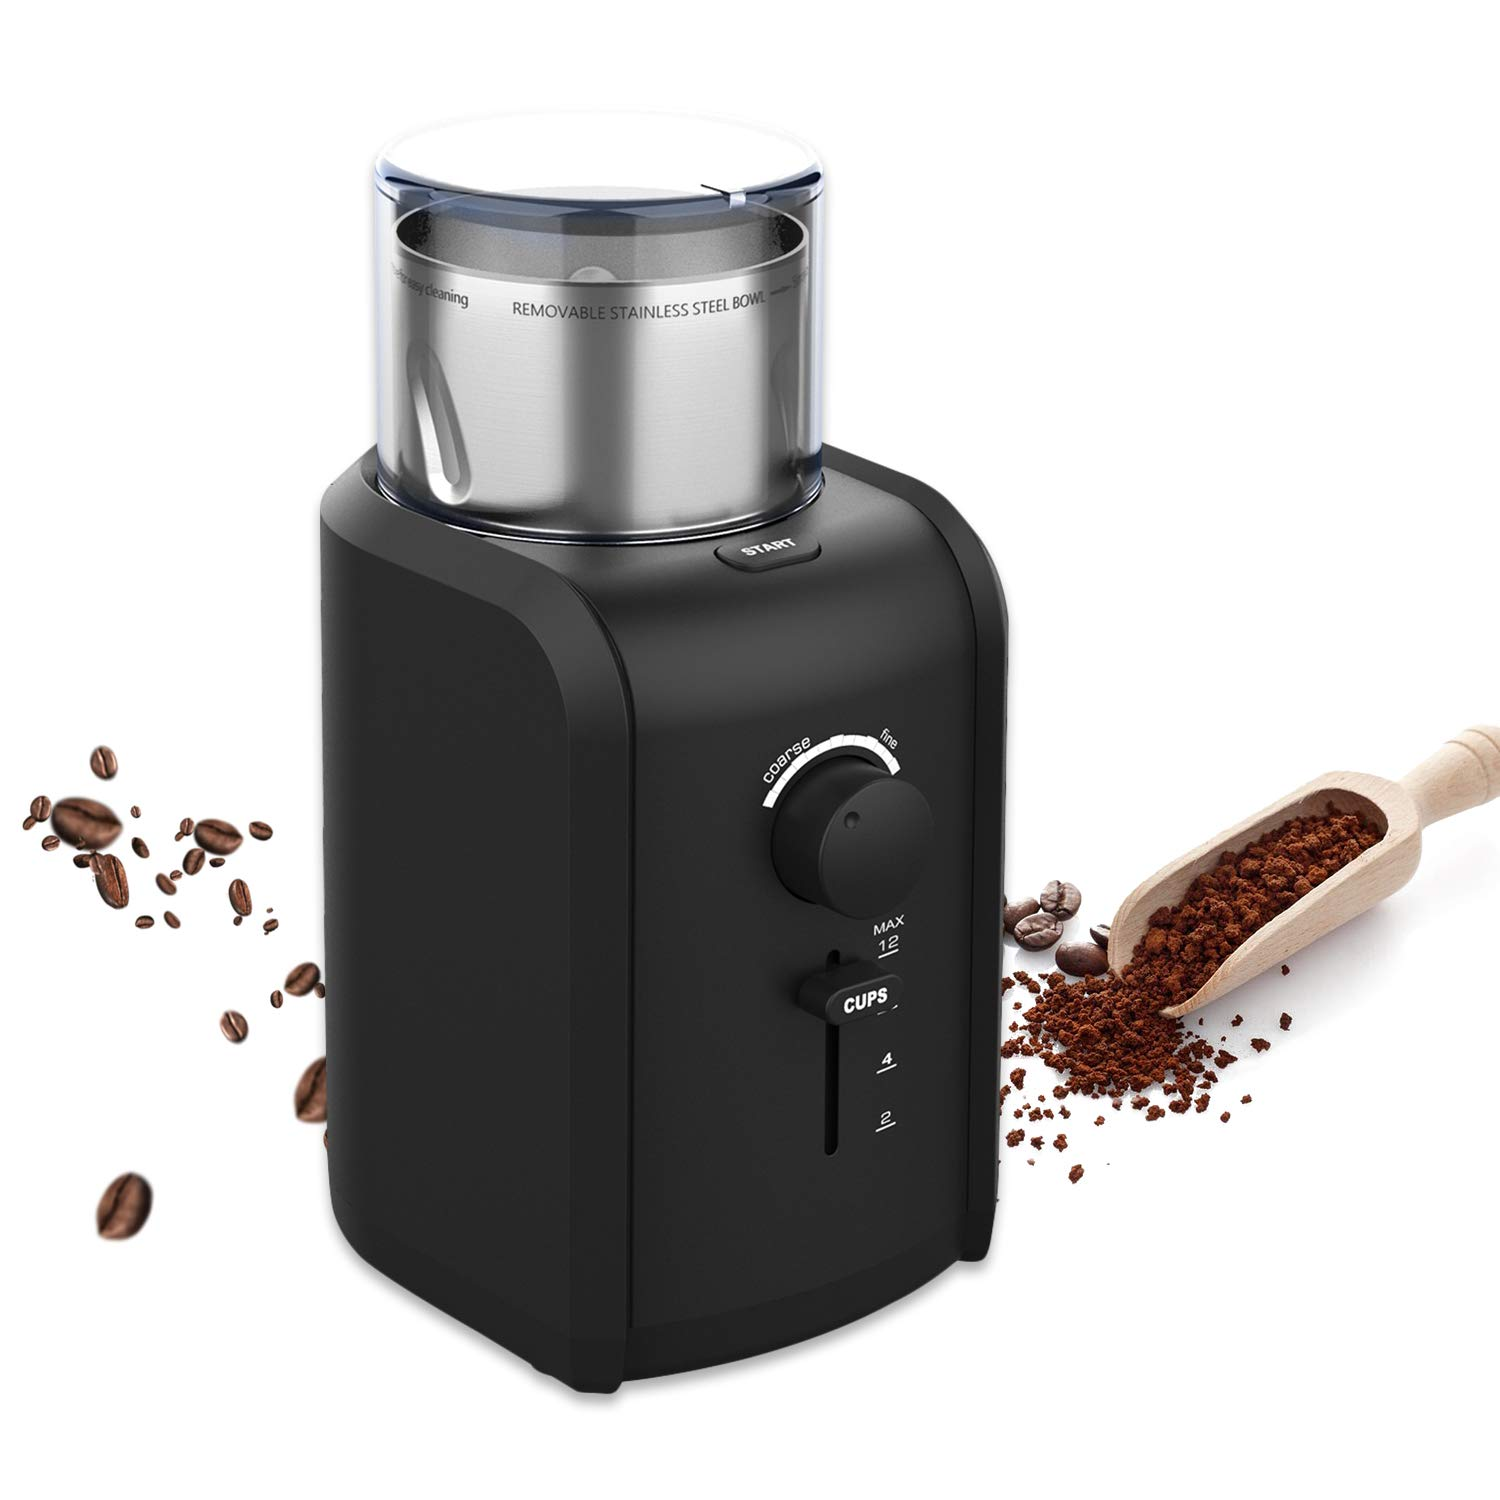 Electric Coffee Bean Grinder, Powerful Grinder, Grind Size & Cup Selection, Removable Cup, Stainless Steel, Easy Cleaning, Herbs, Grains, Nuts, Spice, 12 Cups, 200 Watt, Best Gifts